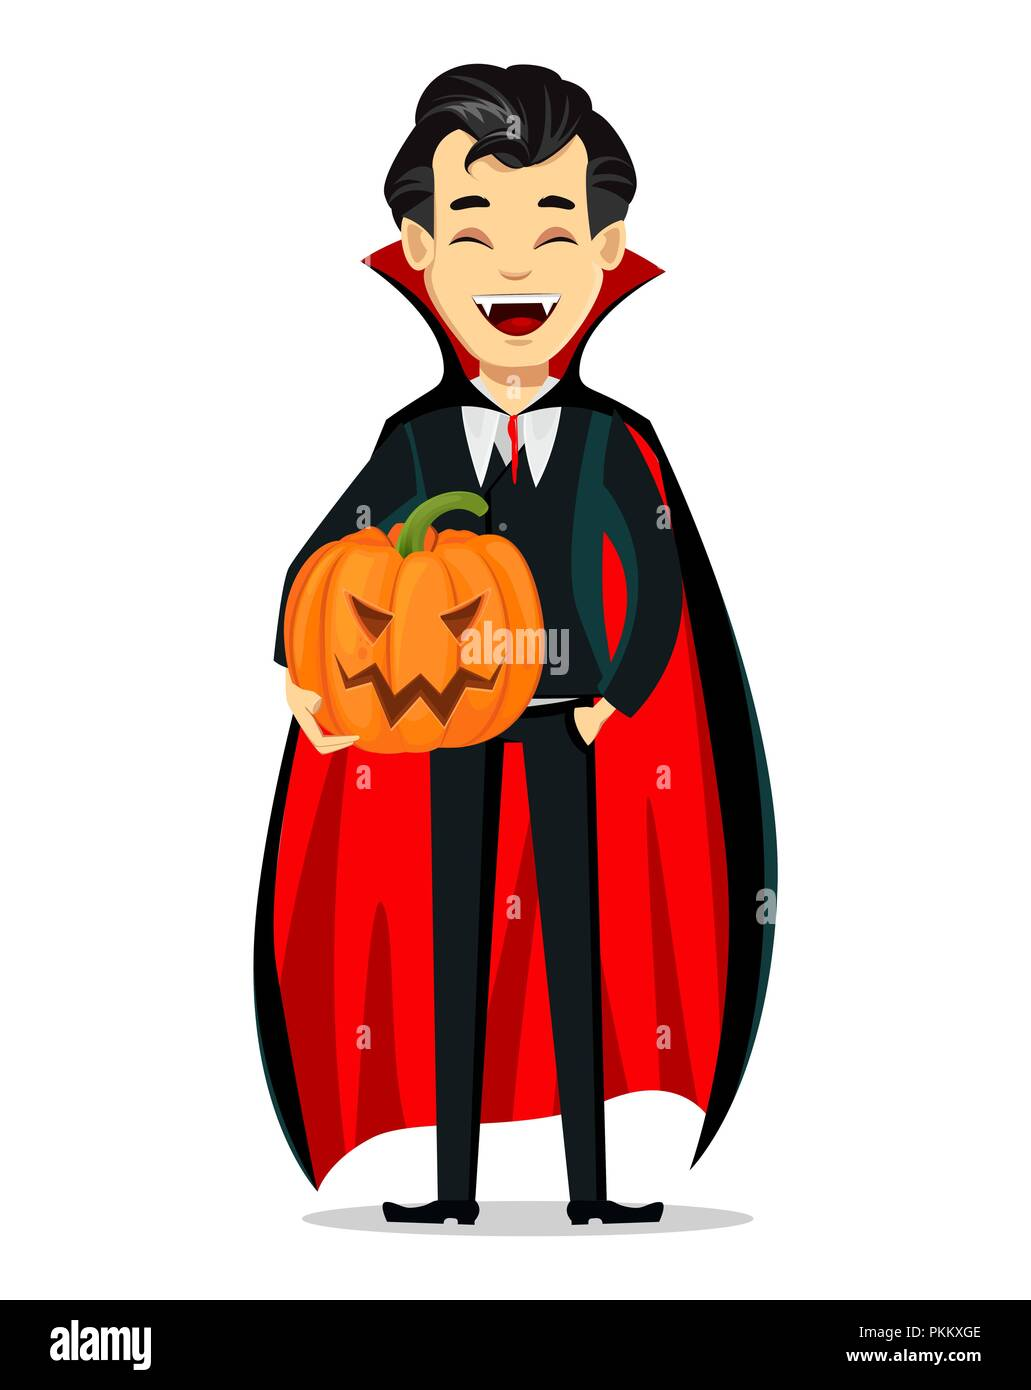 Happy Halloween. Vampire cartoon character wearing black and red ...